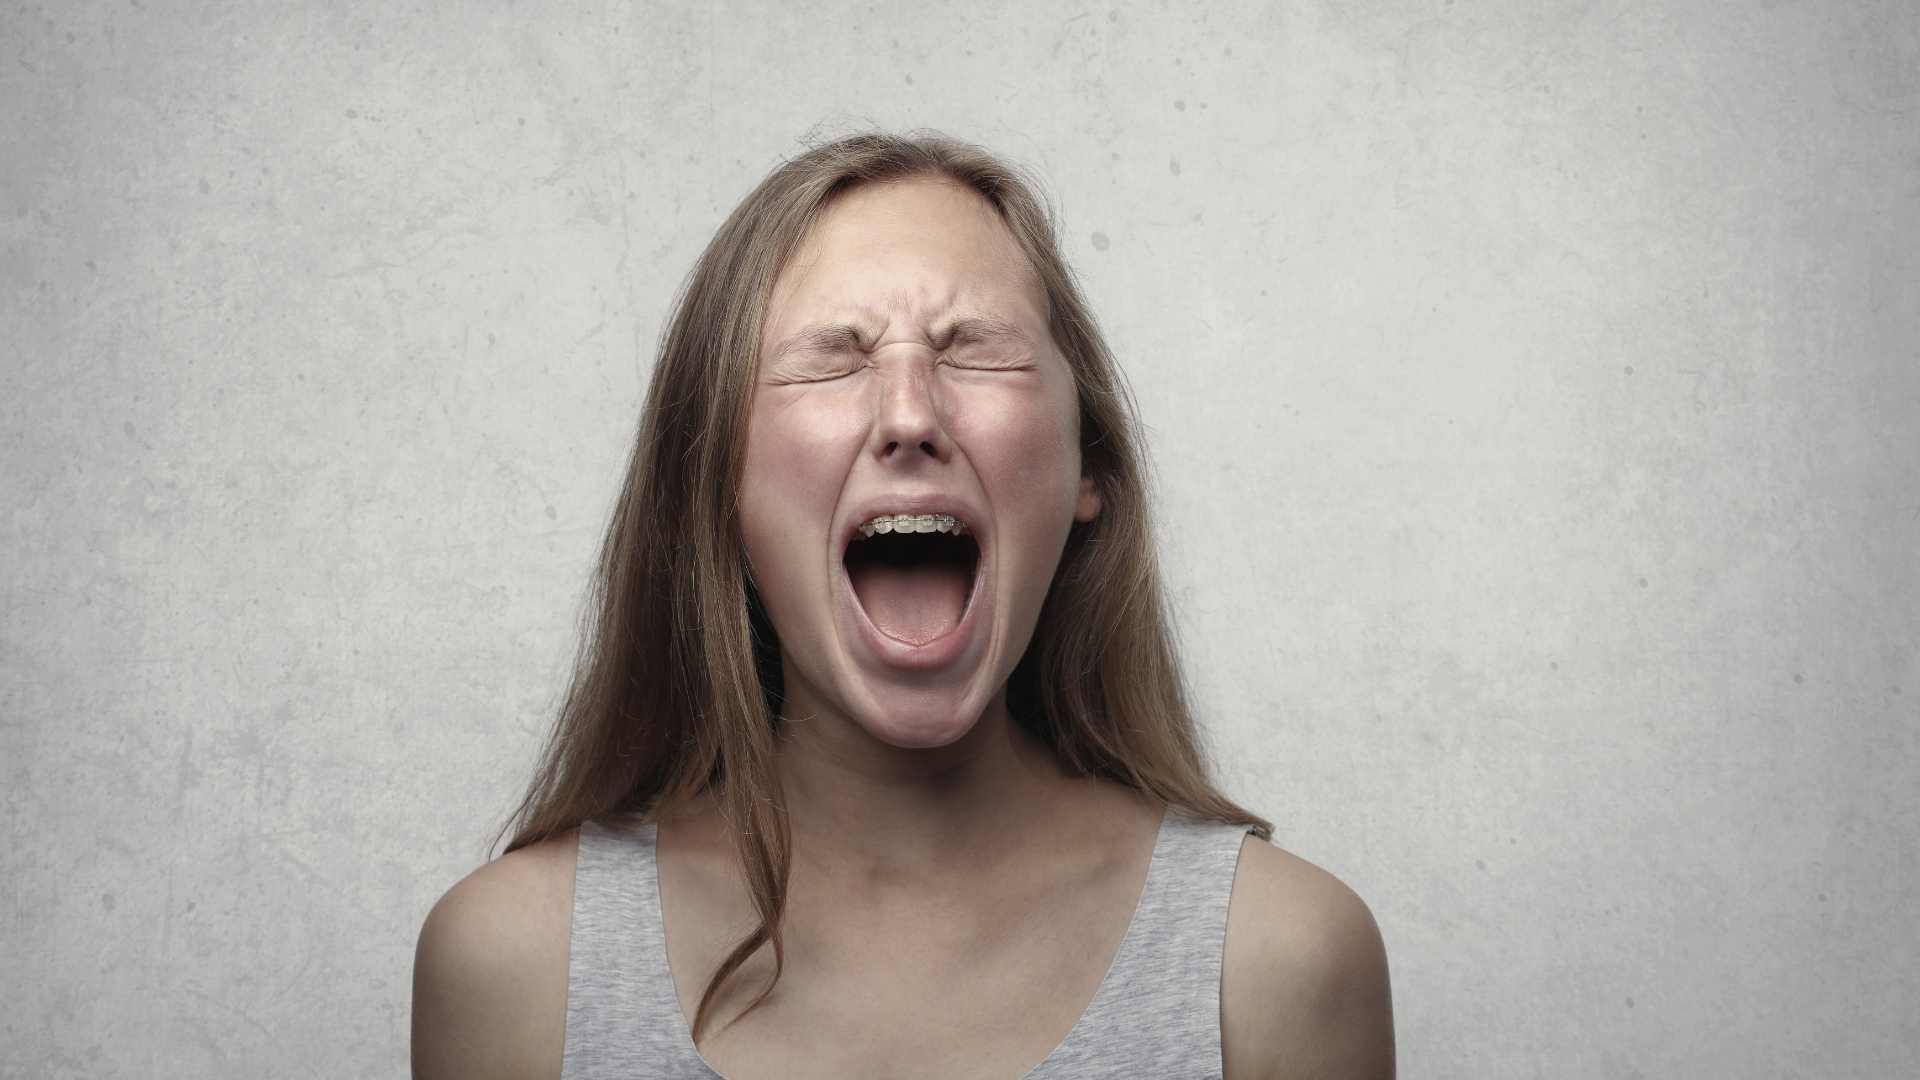 Angry women mom parent screaming and shouting